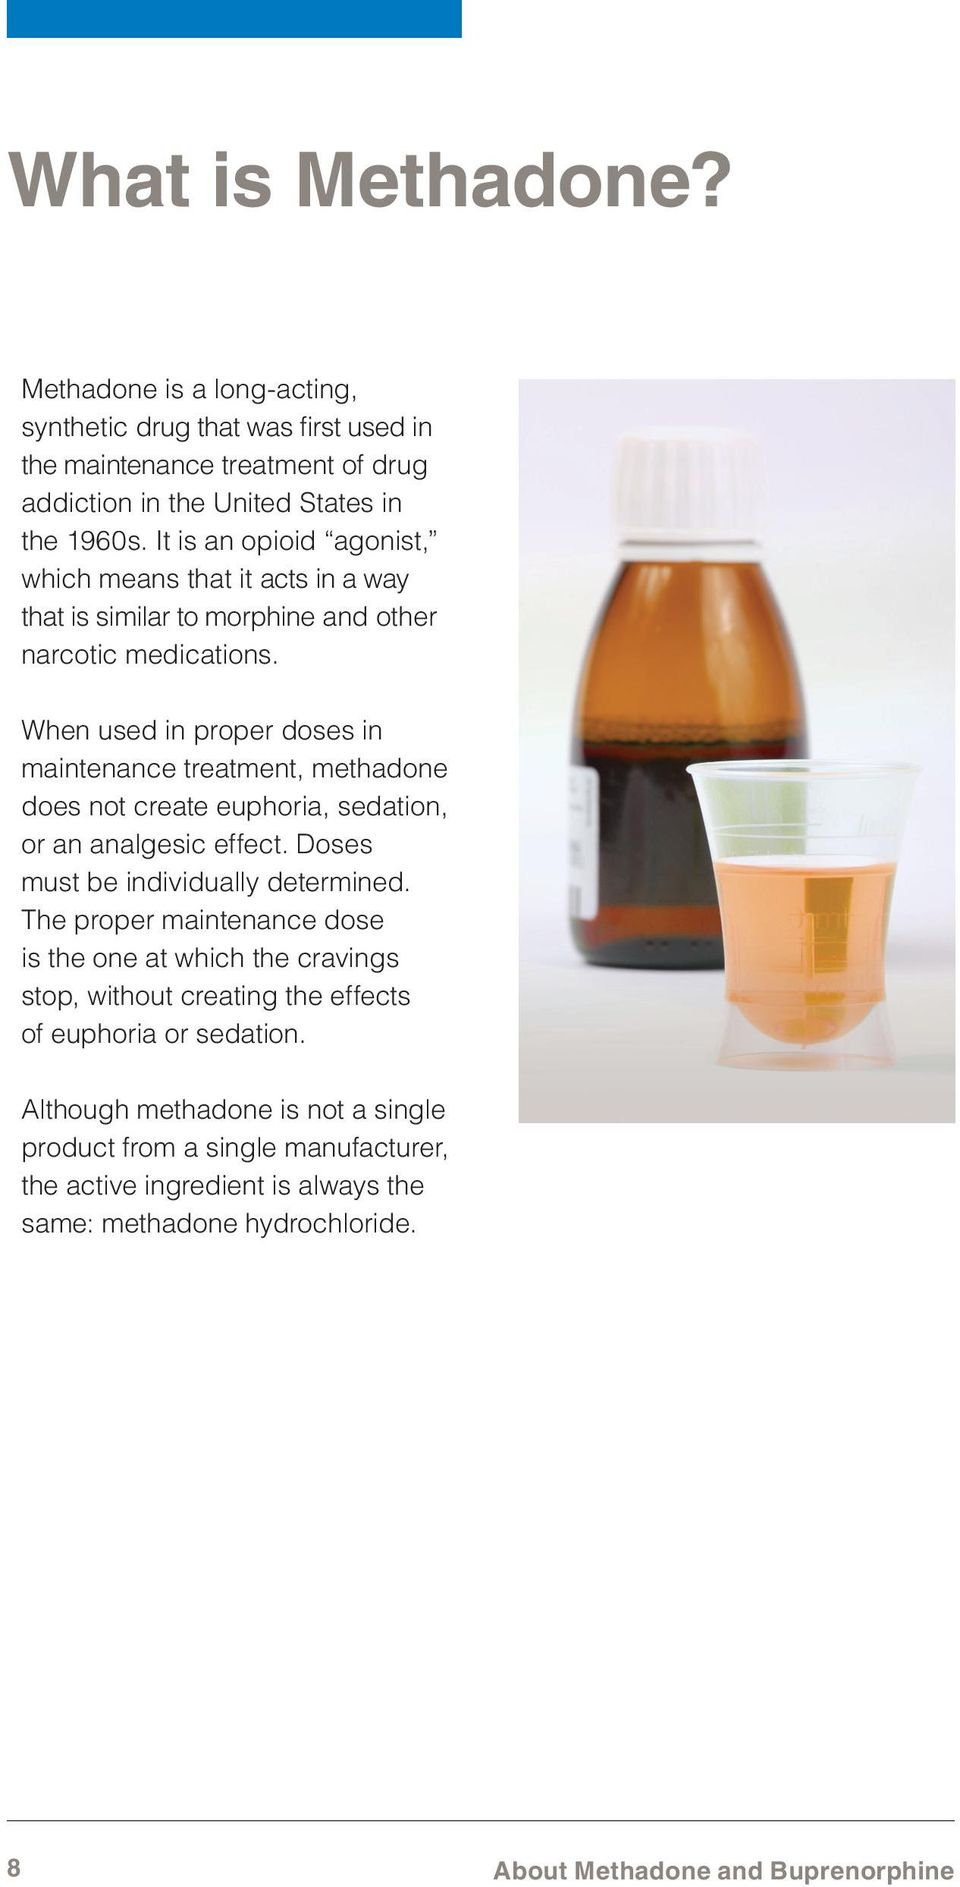 When used in proper doses in maintenance treatment, methadone does not create euphoria, sedation, or an analgesic effect. Doses must be individually determined.